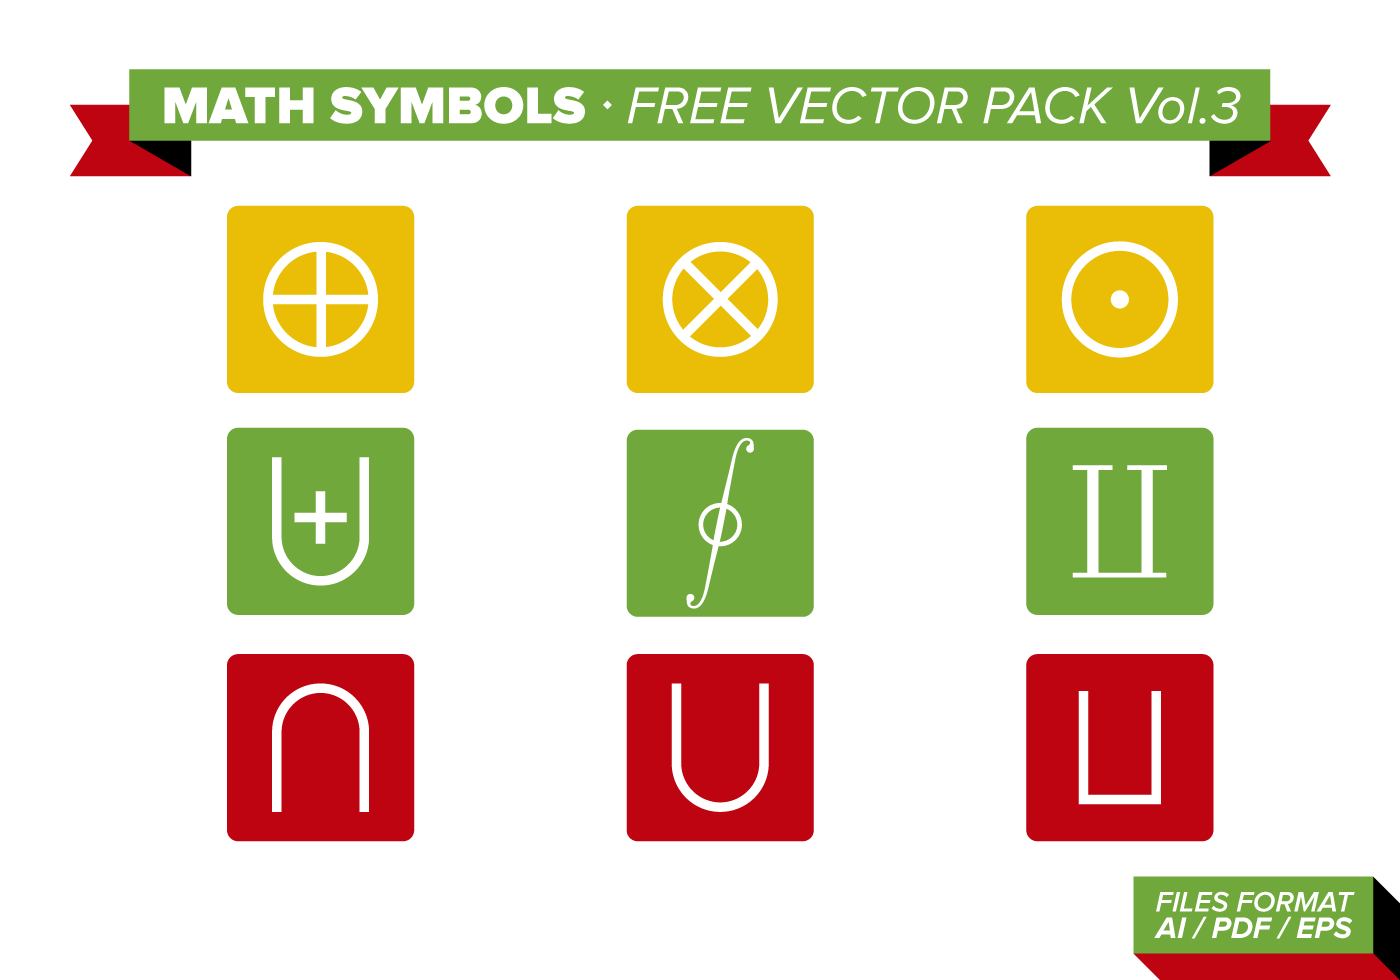 Math Symbols Free Vector Pack Vol 3